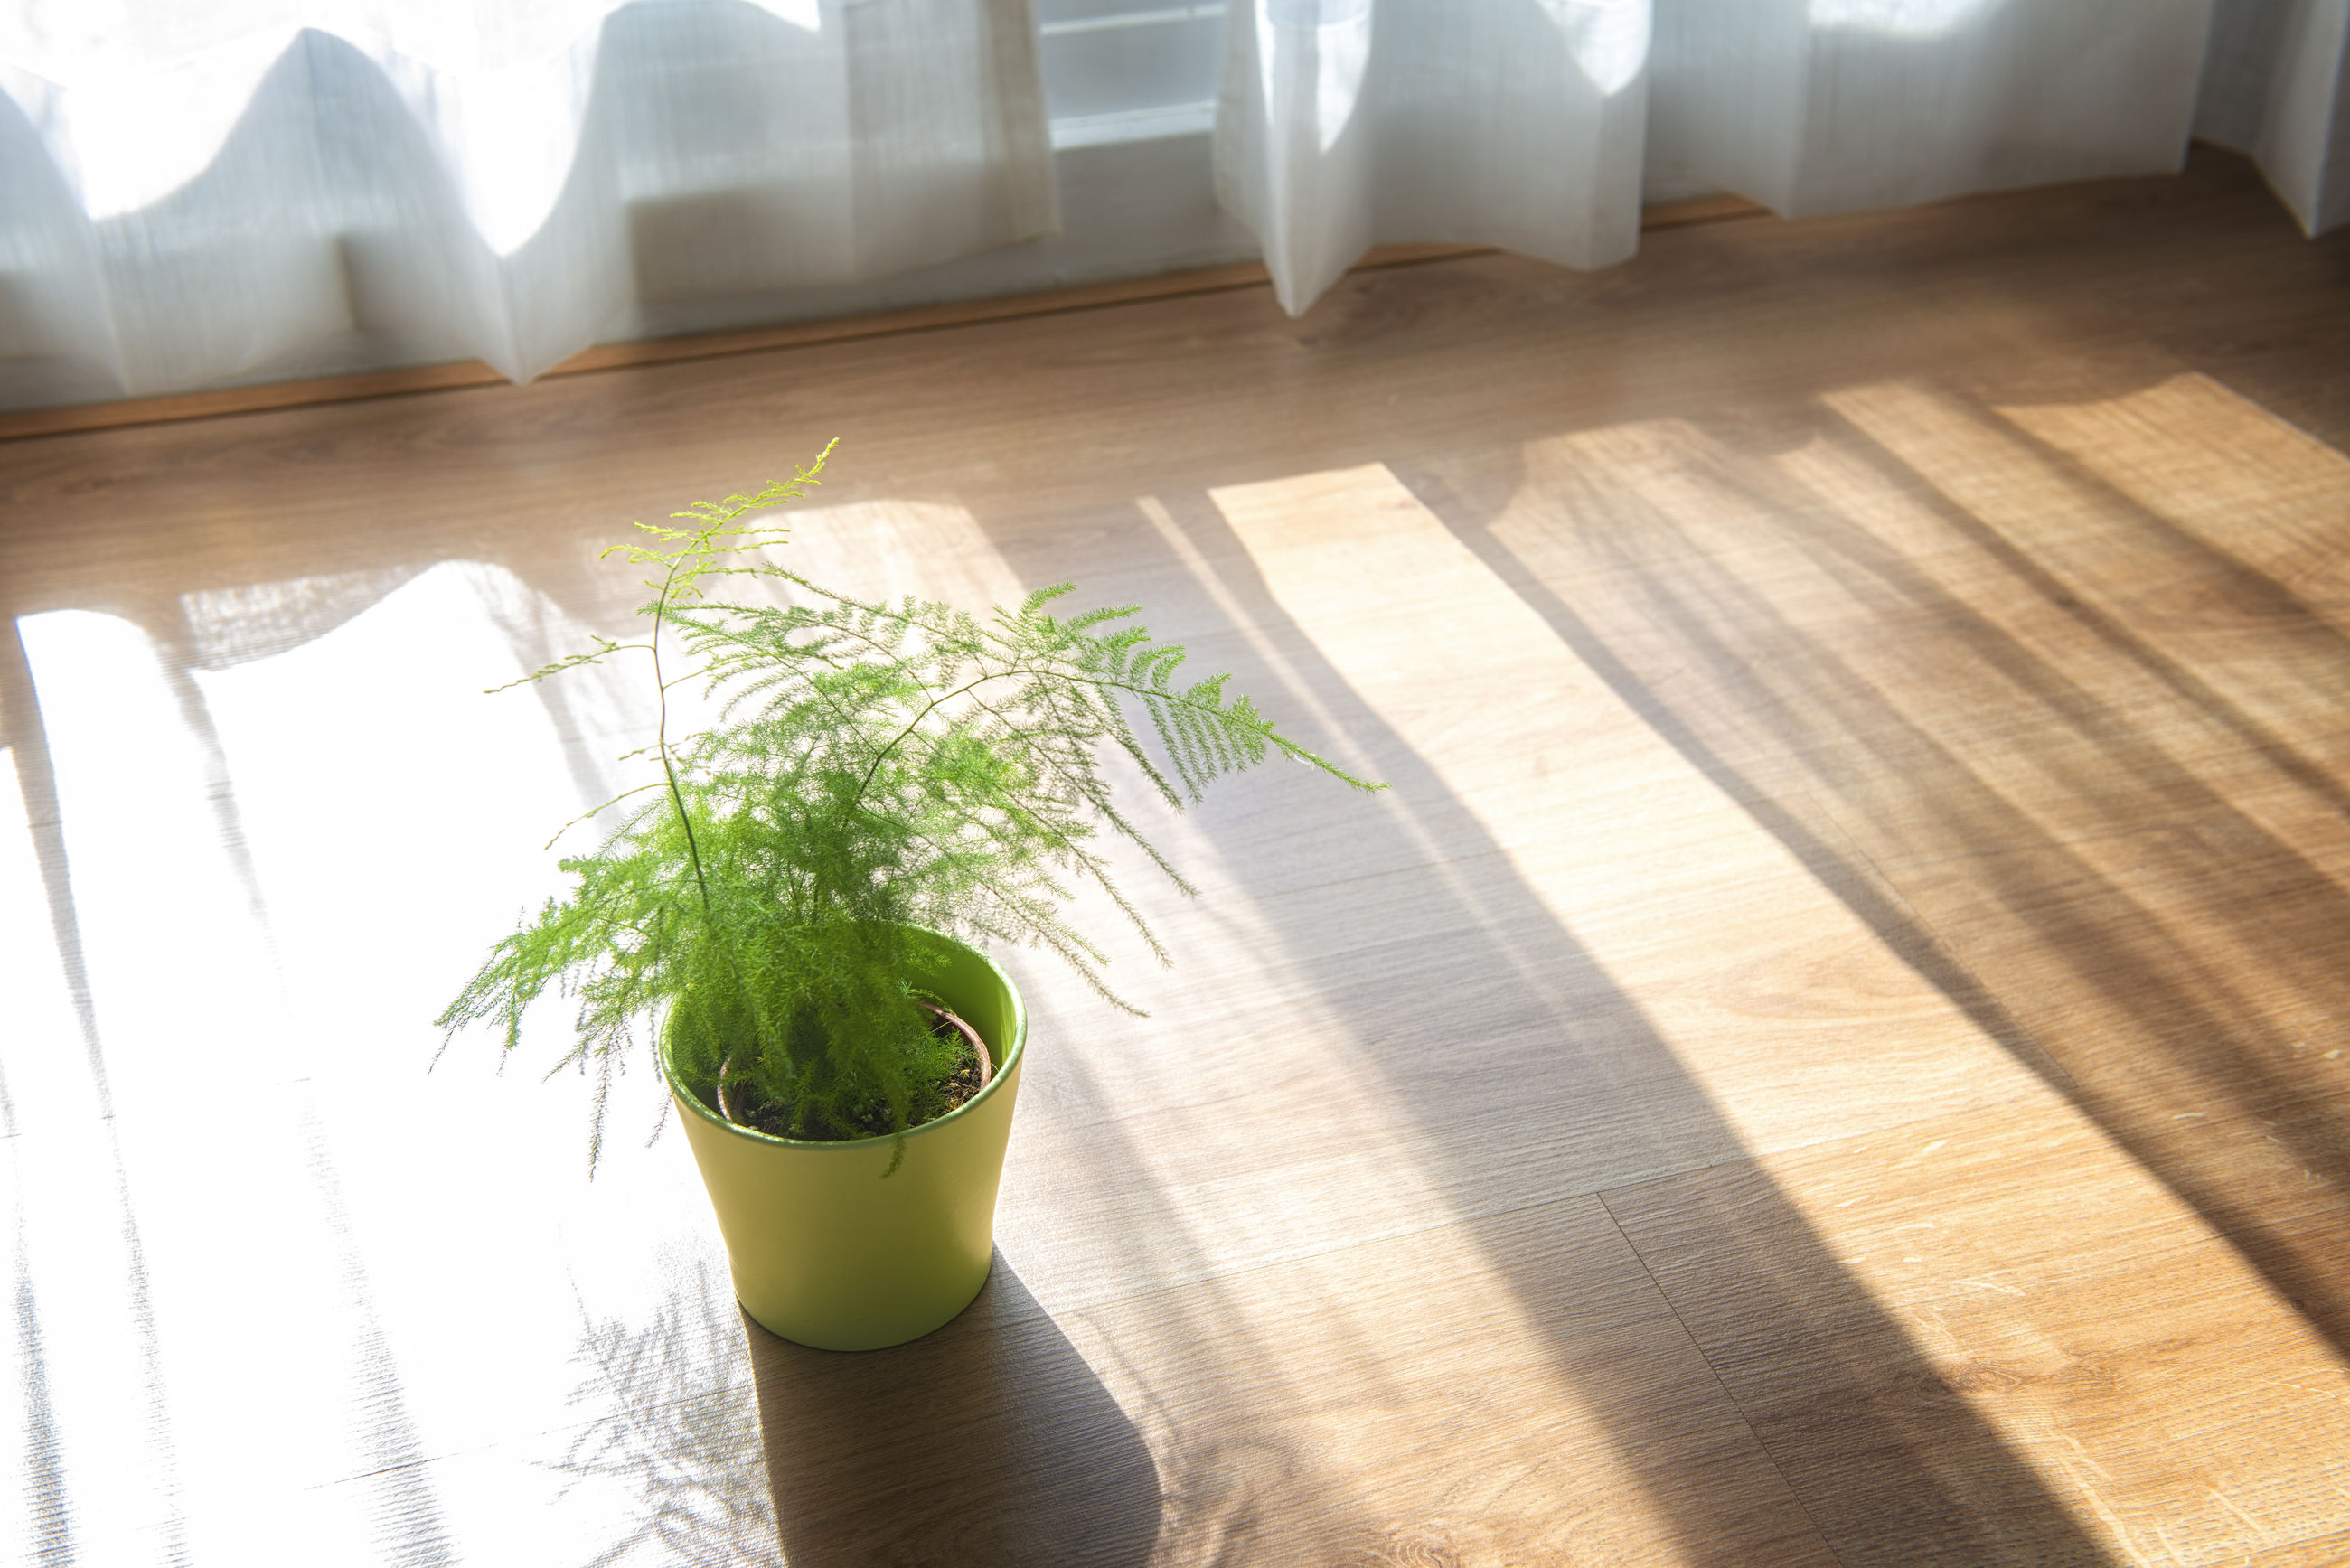 Potted plant on hardwood floor at home